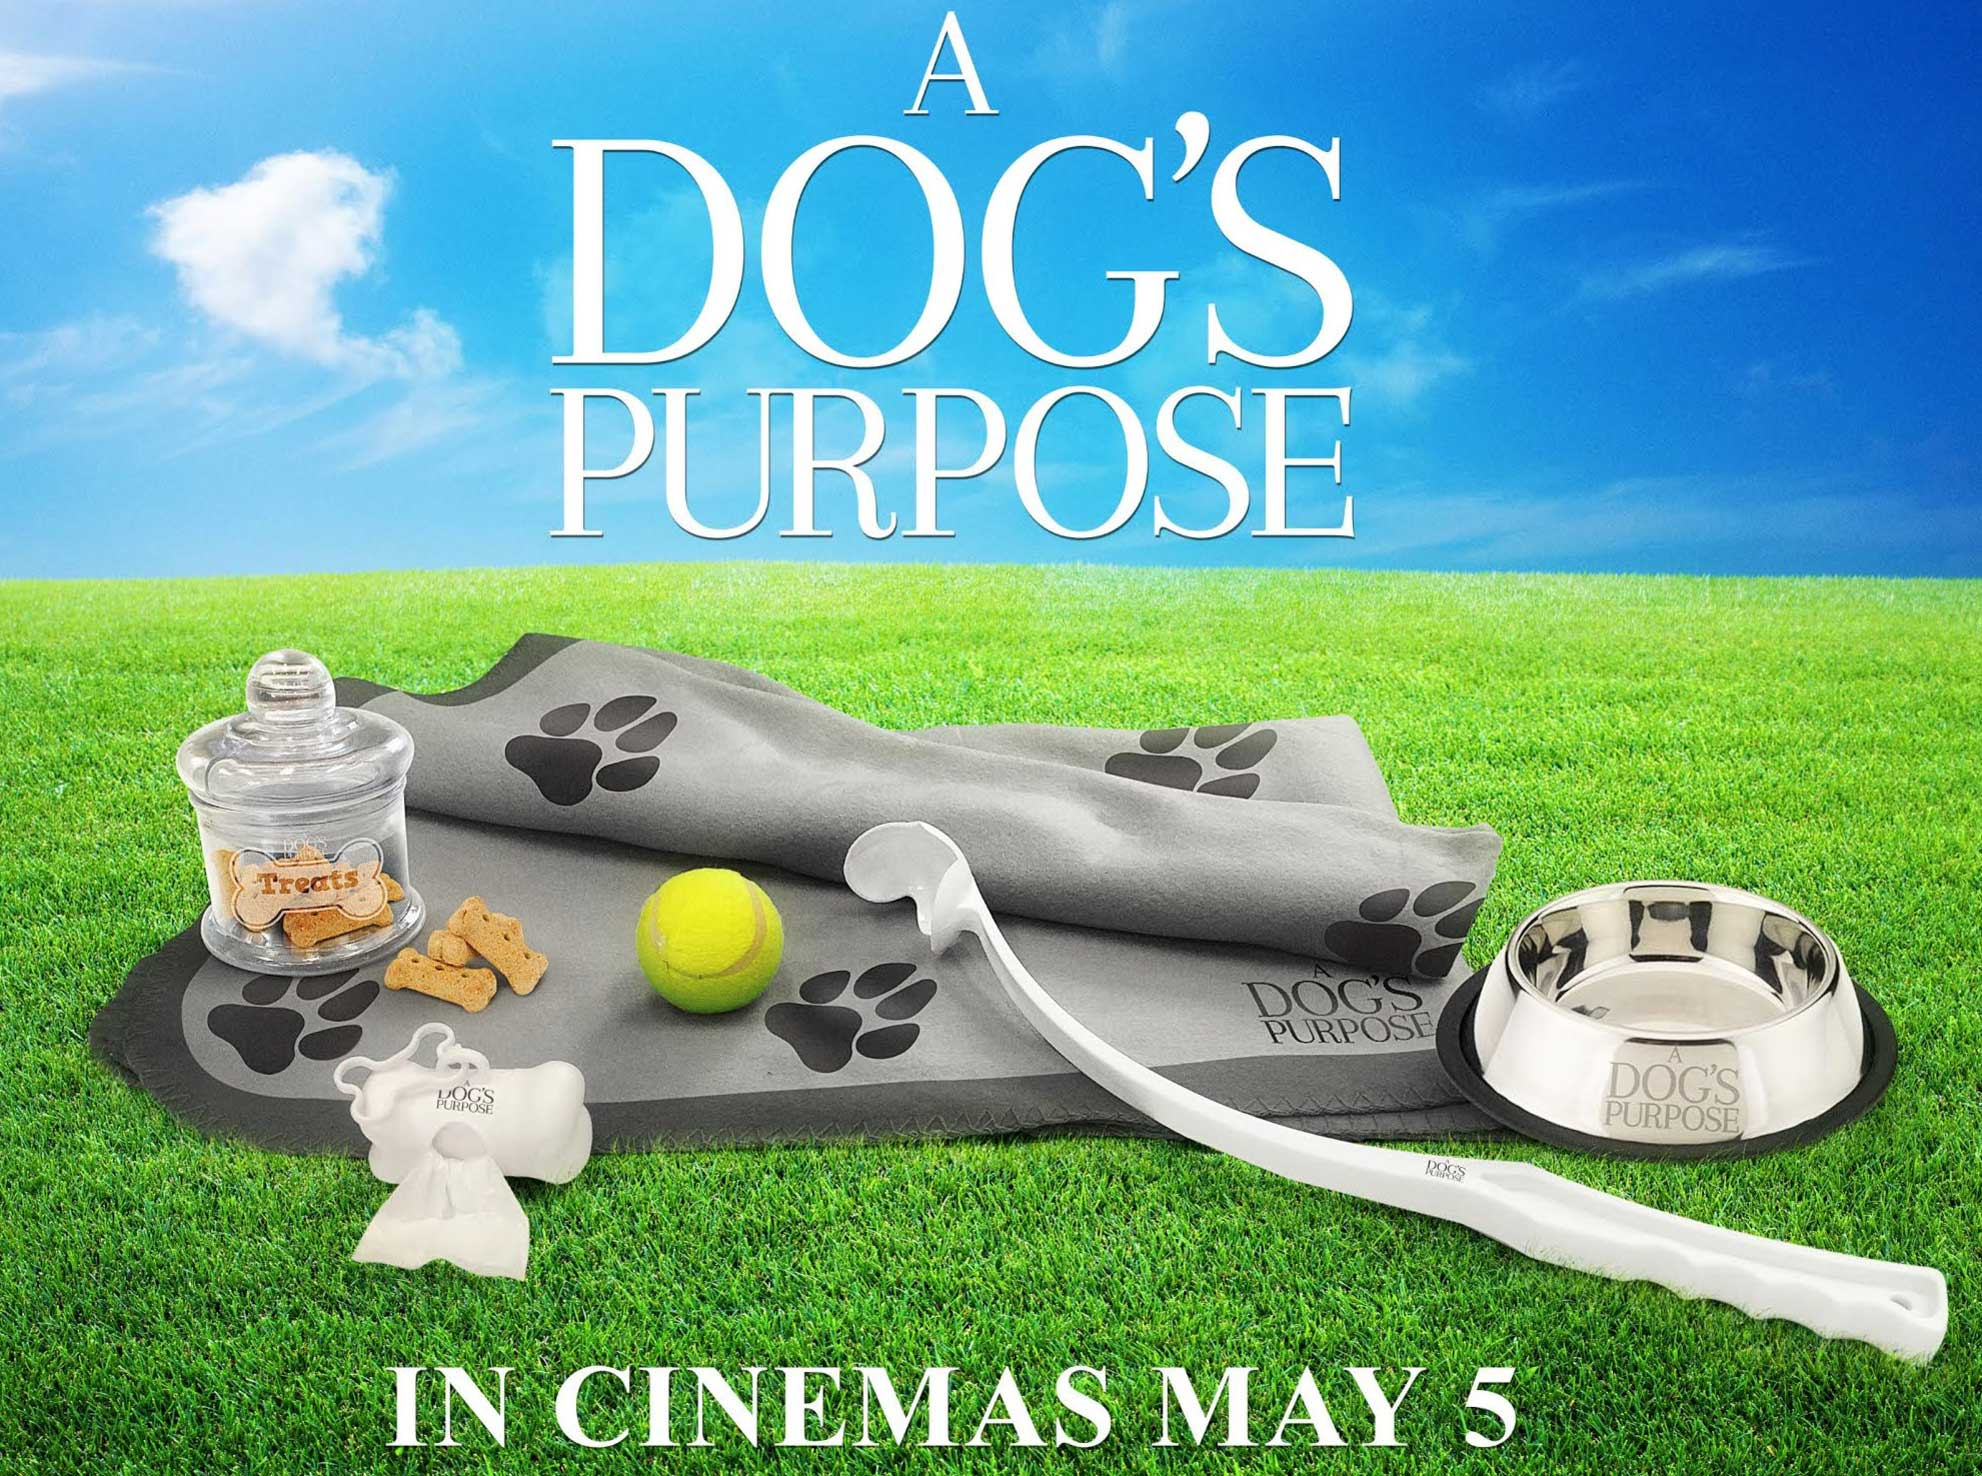 Dogs Purpose Prizes